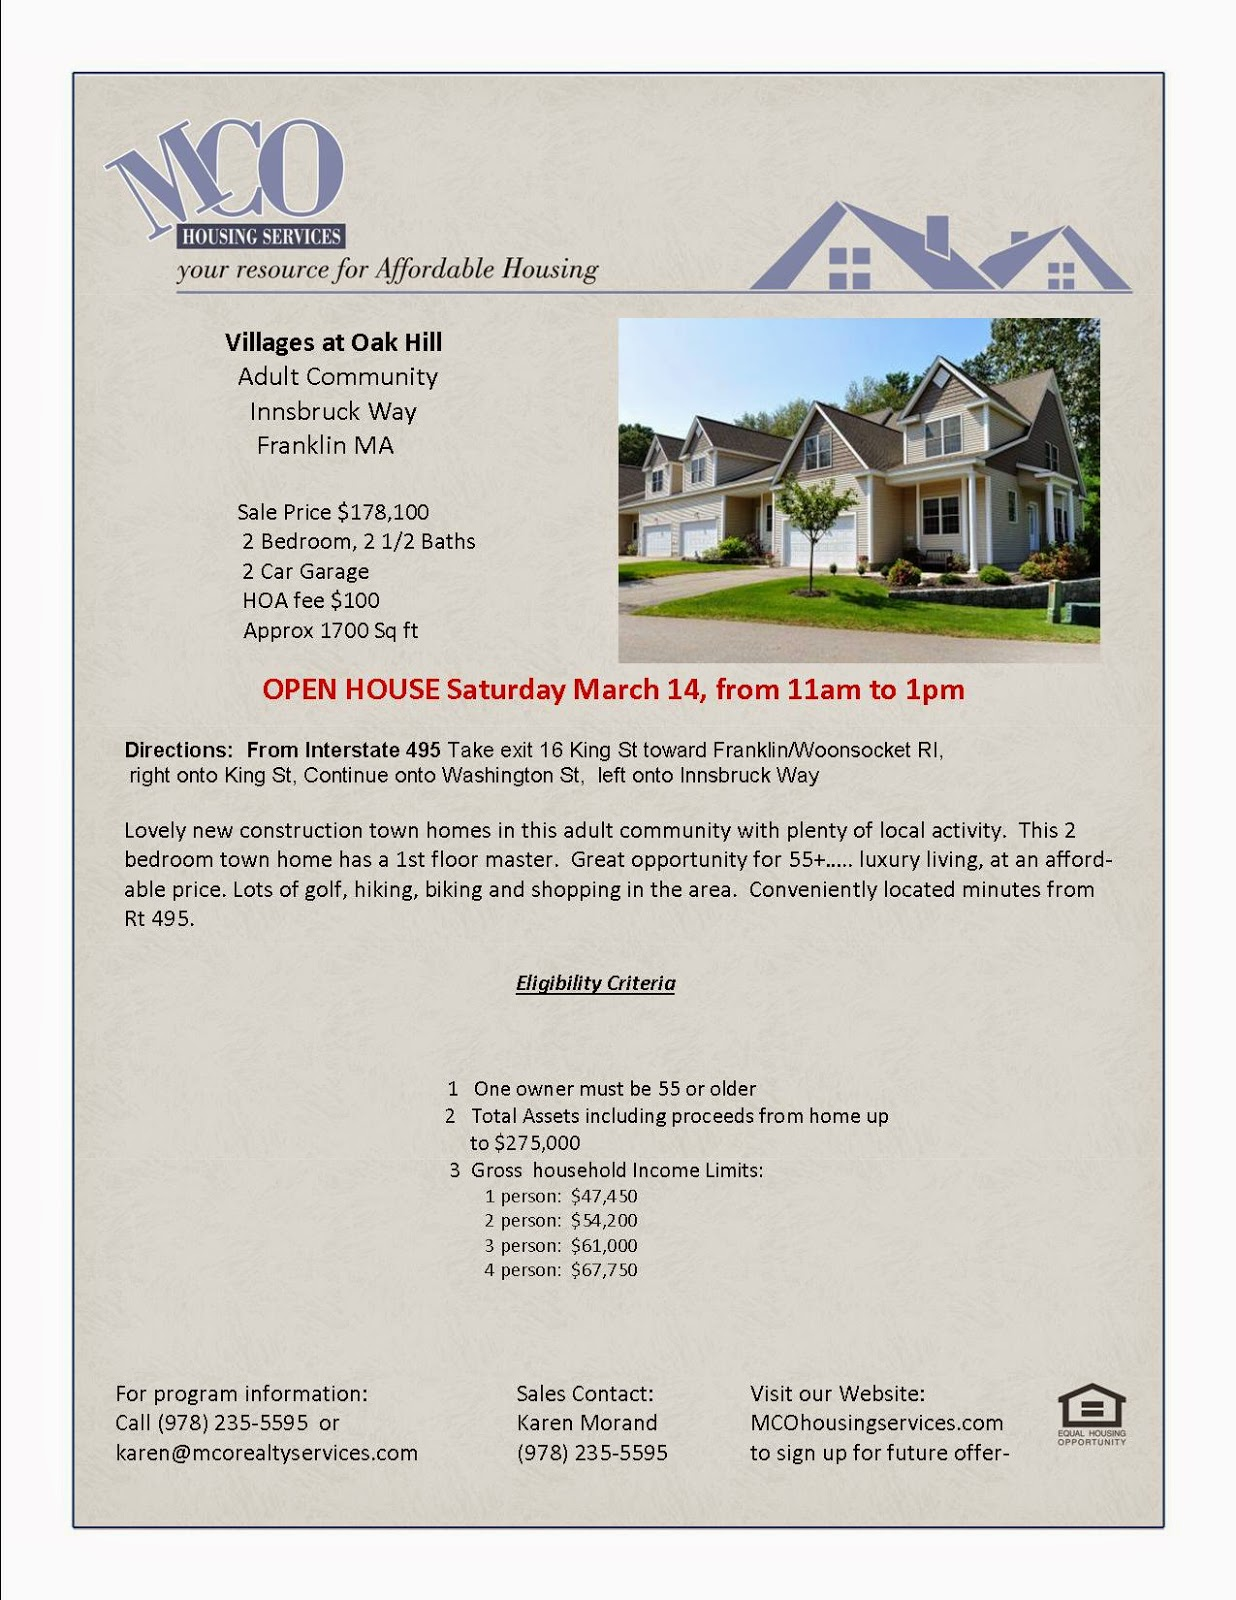 Village at Oak Hill - Open House - March 14